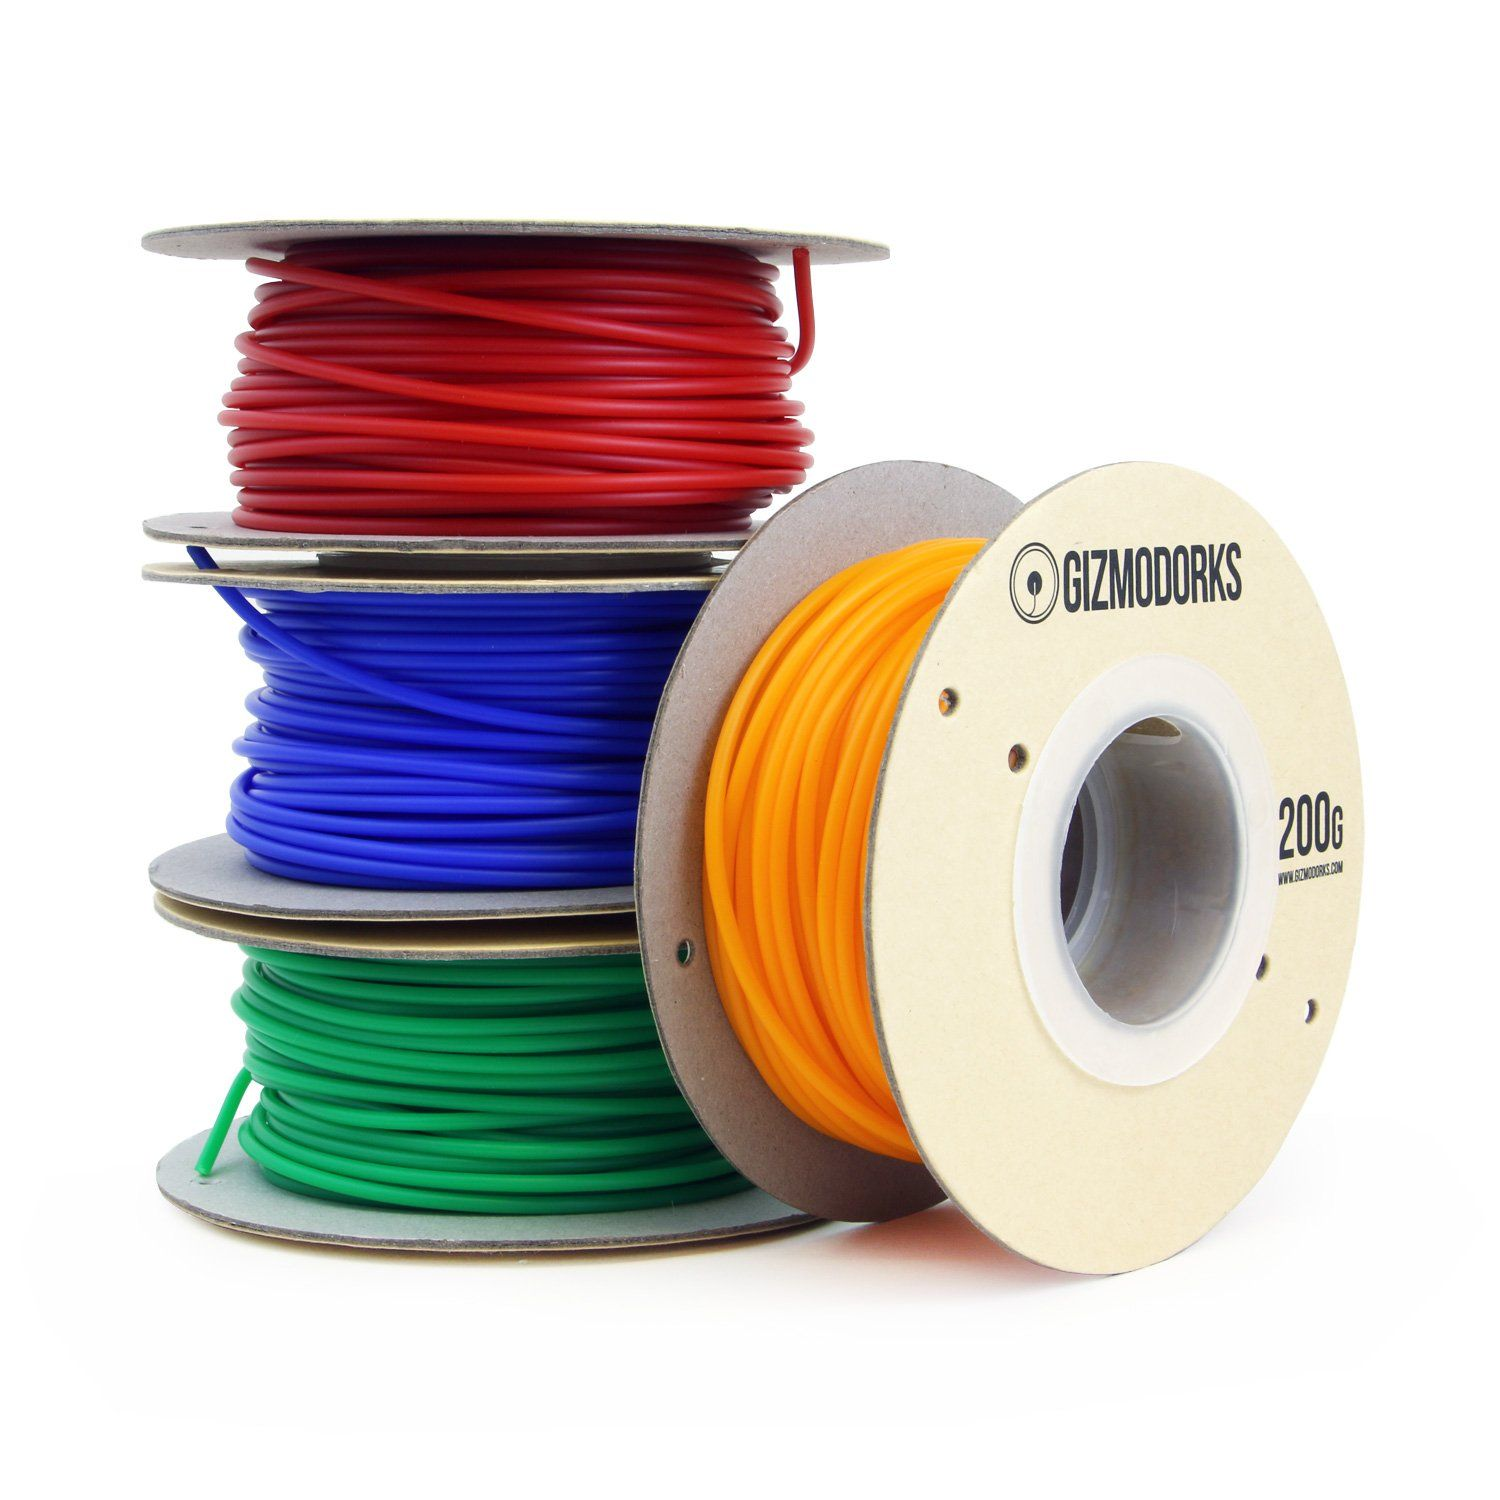 Blue 2.85mm Gizmo Dorks 3mm ABS Filament 1kg // 2.2lb for 3D Printers